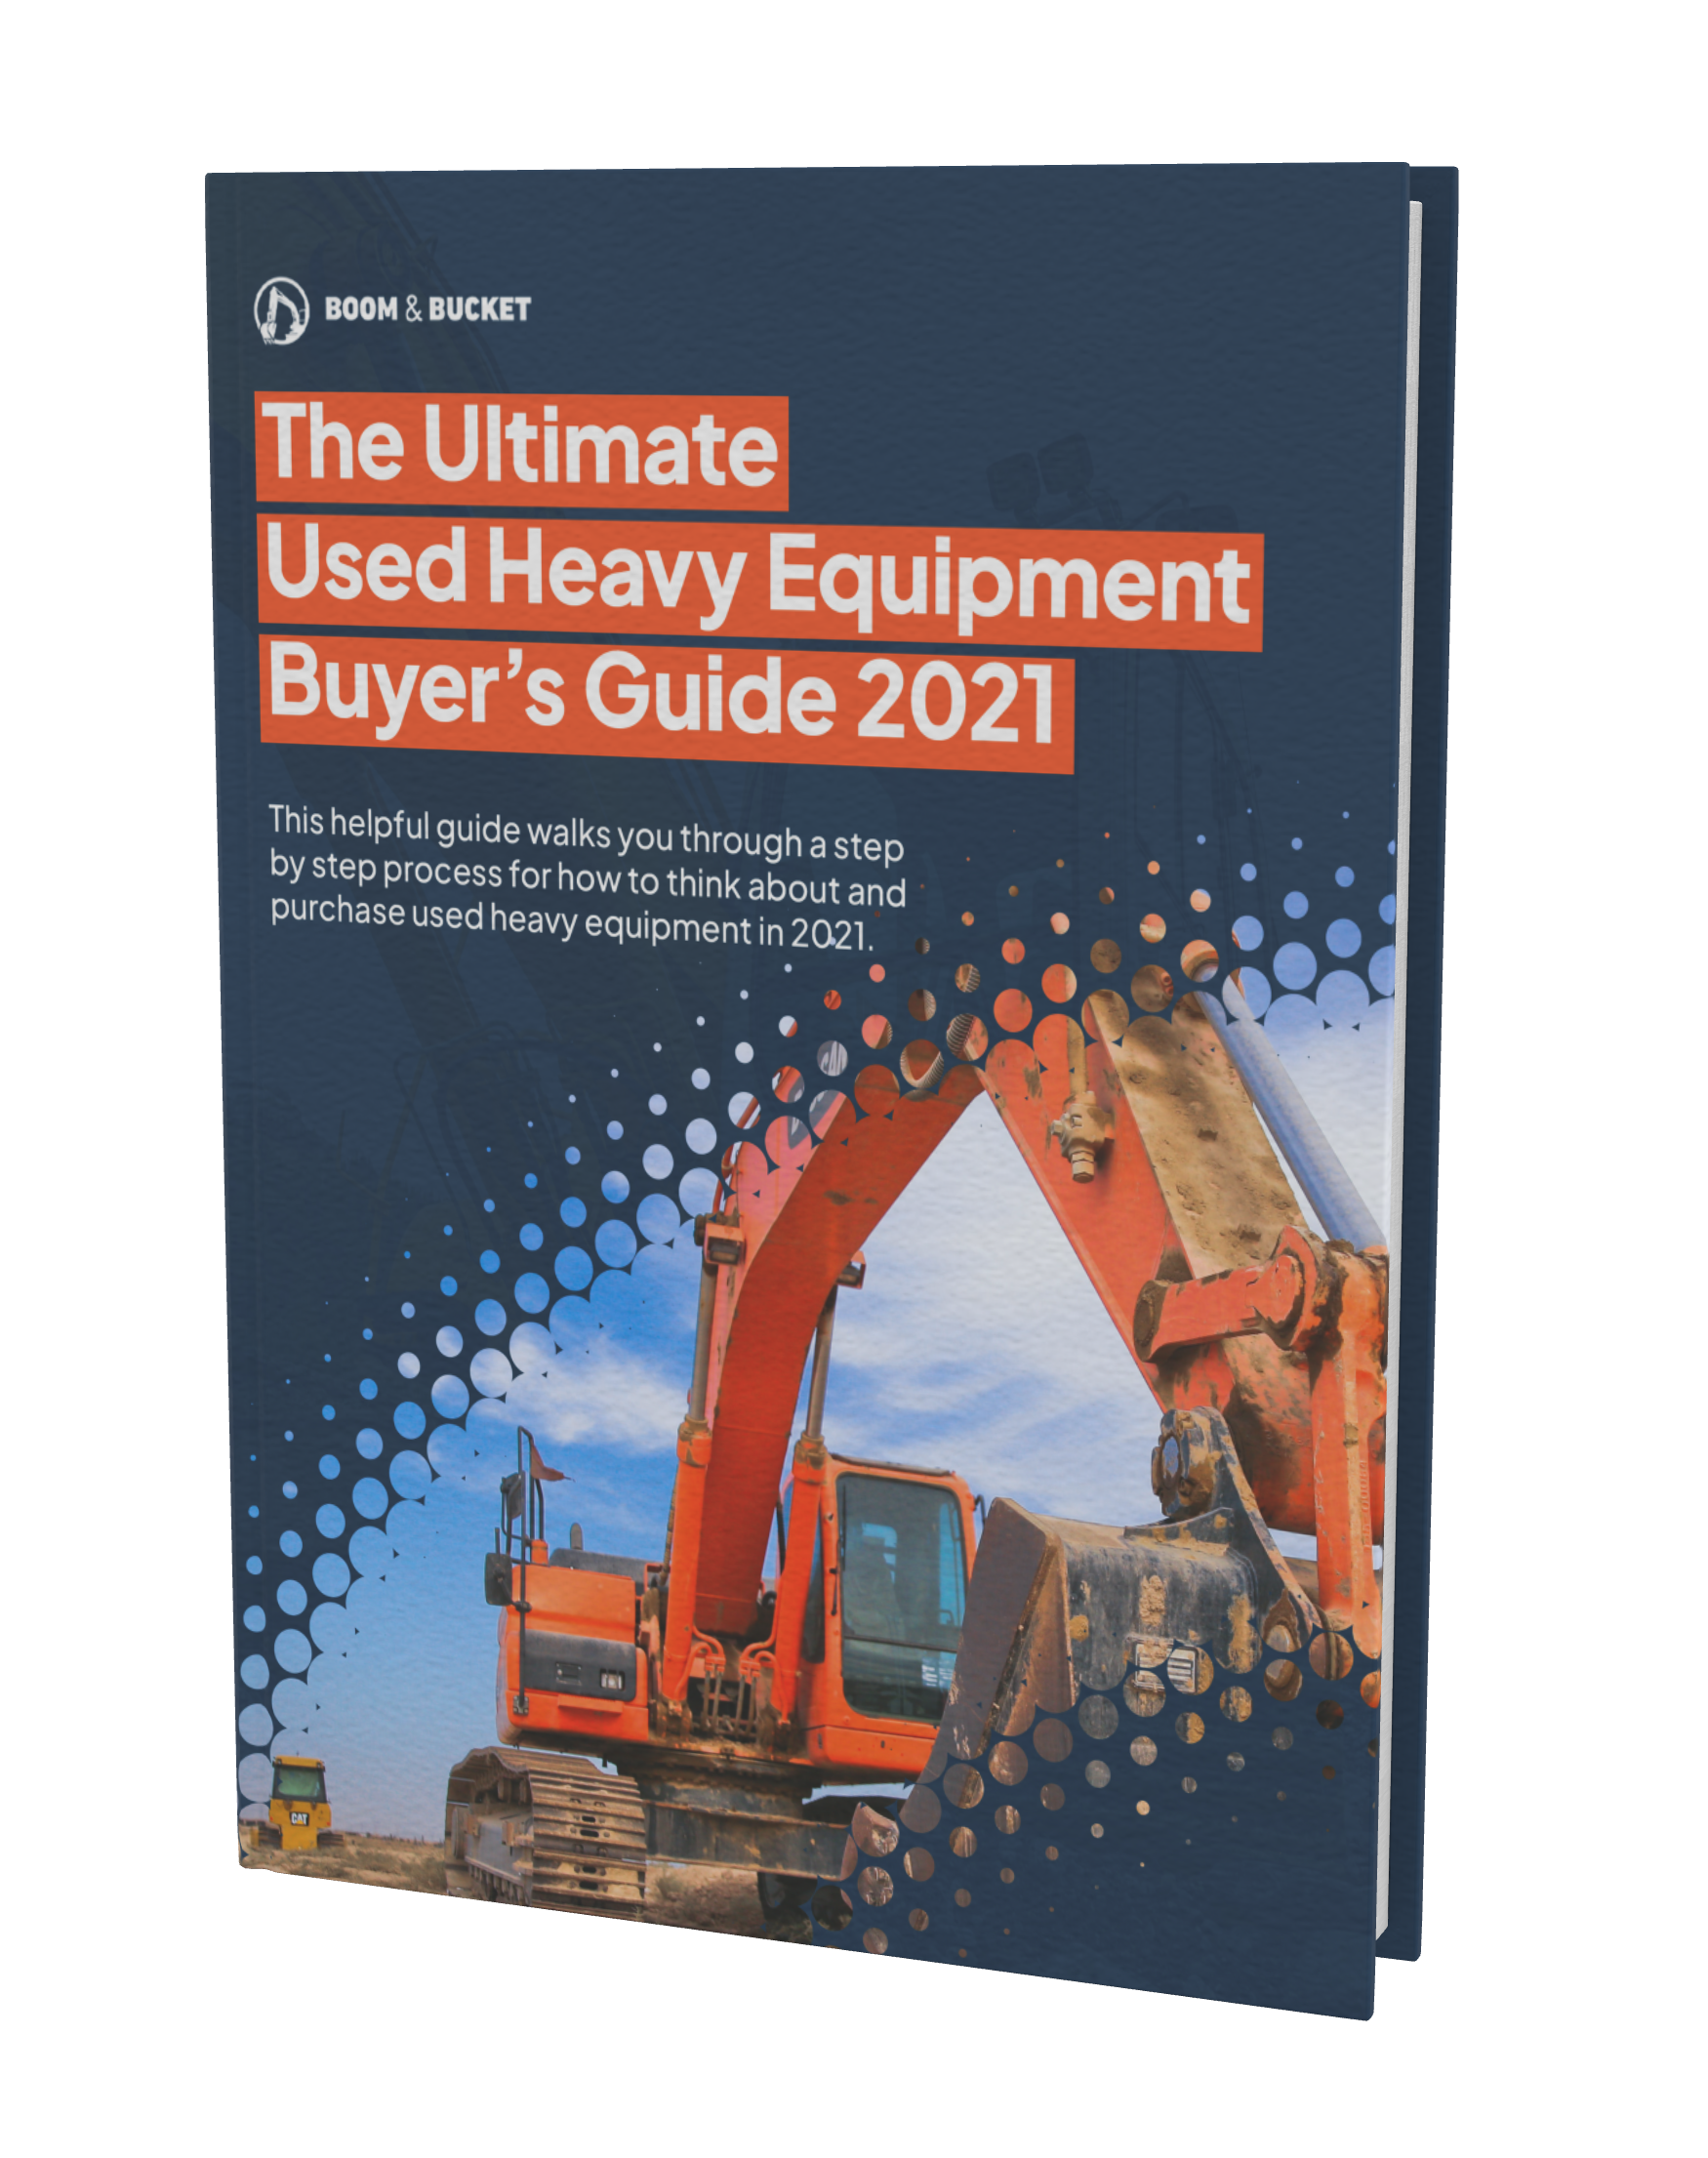 The Ultimate Used Heavy Equipment Buyer's Guide 2021